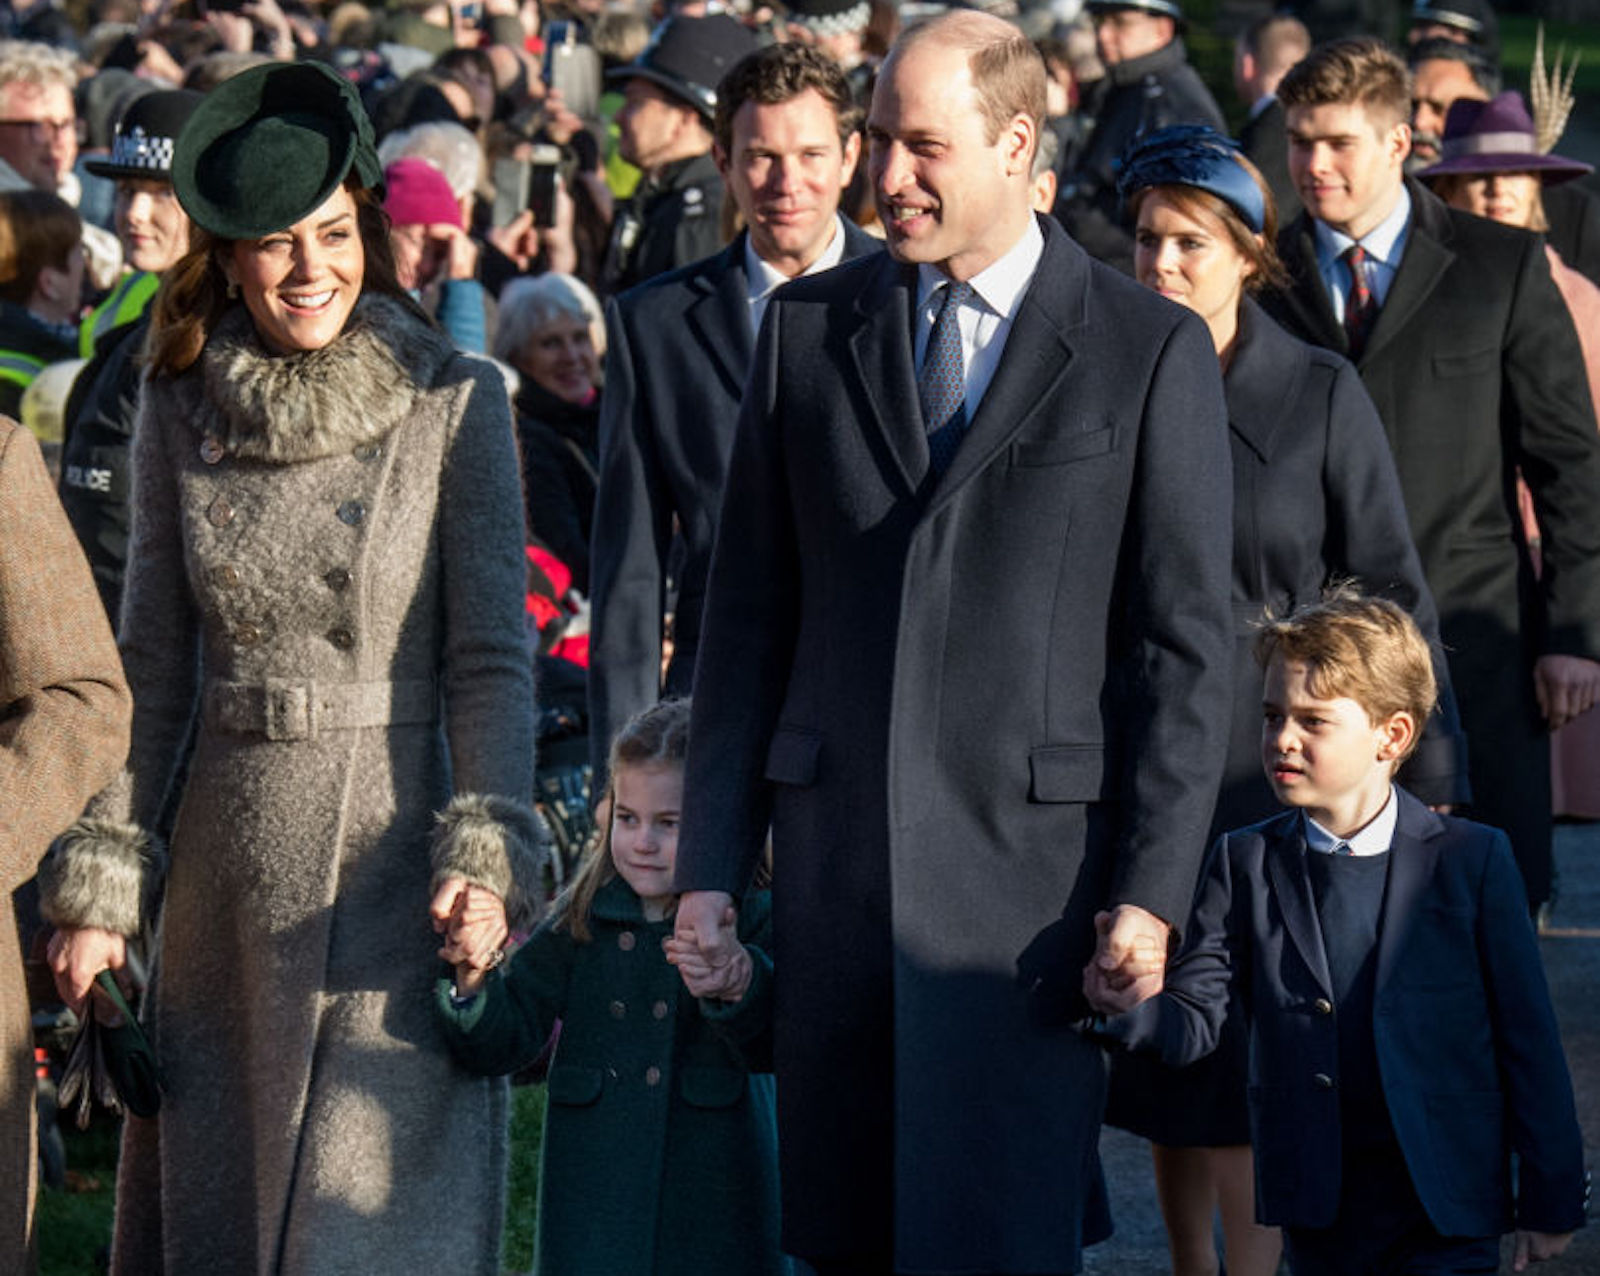 Prince William, Duke of Cambridge and Catherine, Duchess of Cambridge with Prince George of Cambridge and Princess Charlotte of Cambridge attend the Christmas Day Church service at Church of St Mary Magdalene